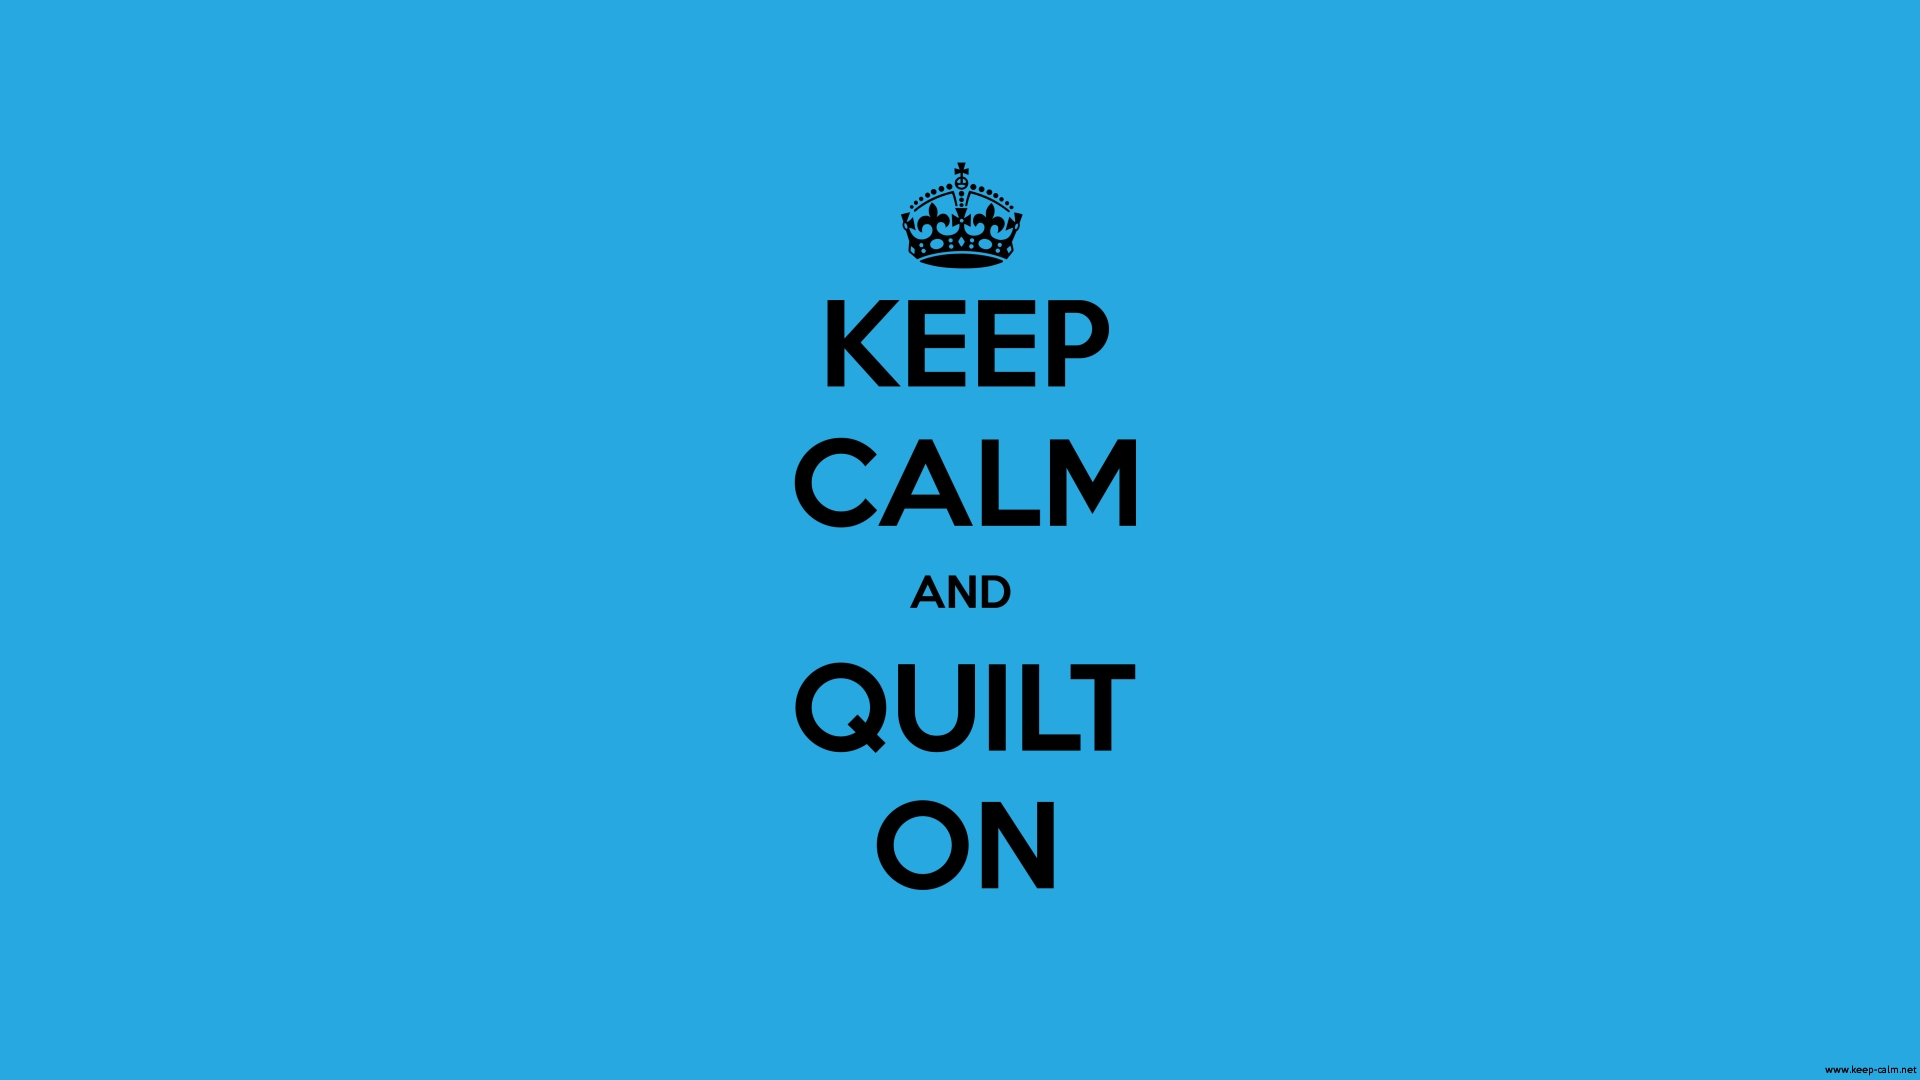 keep-calm-and-quilt-on-1920-1080-black-blue